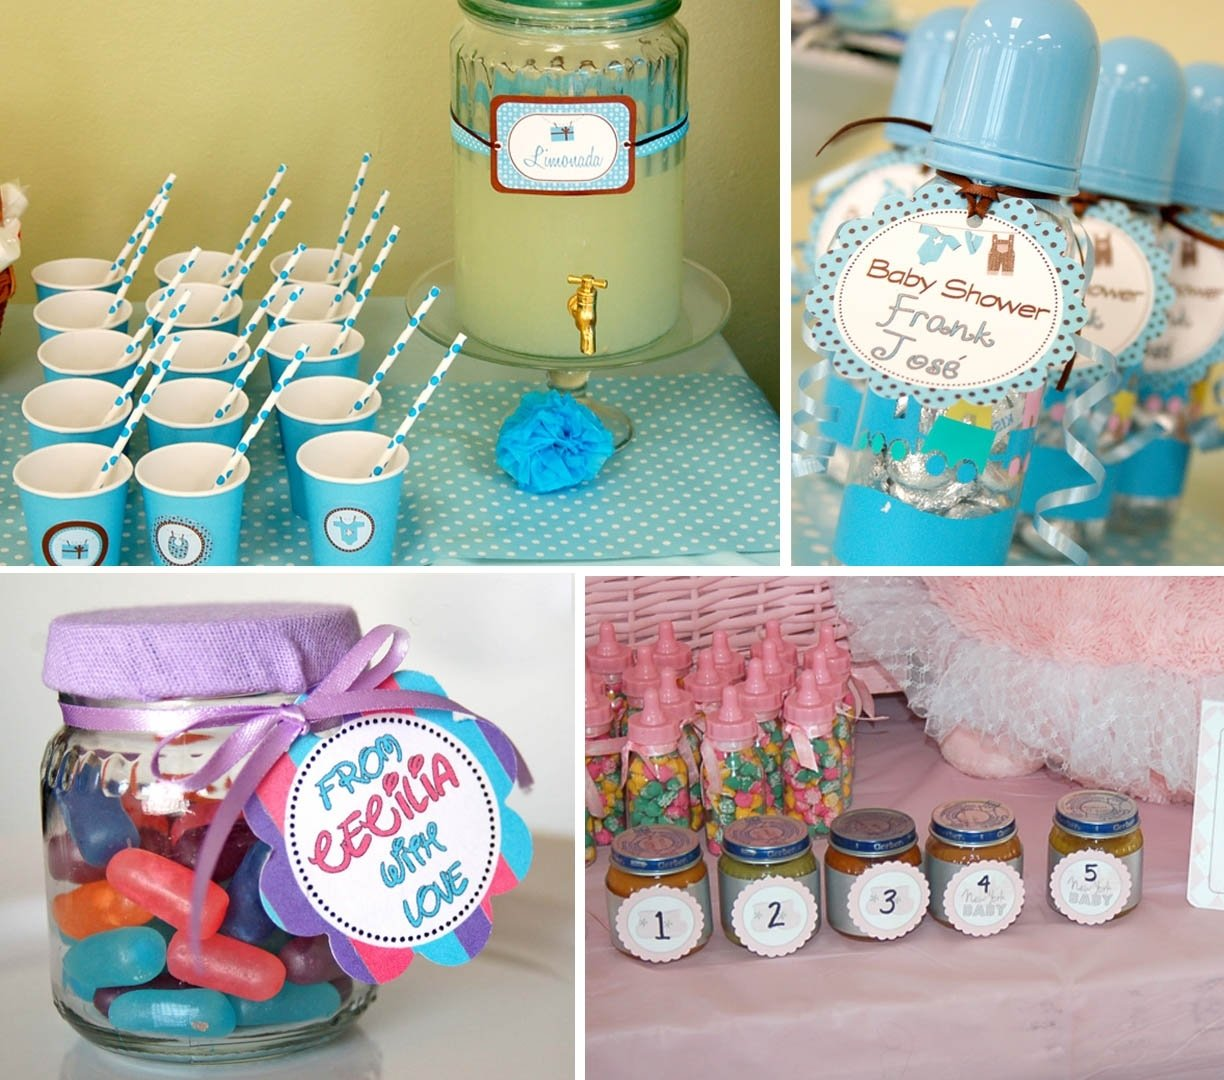 babies at baby shower etiquette beautiful ideas para decorar para un